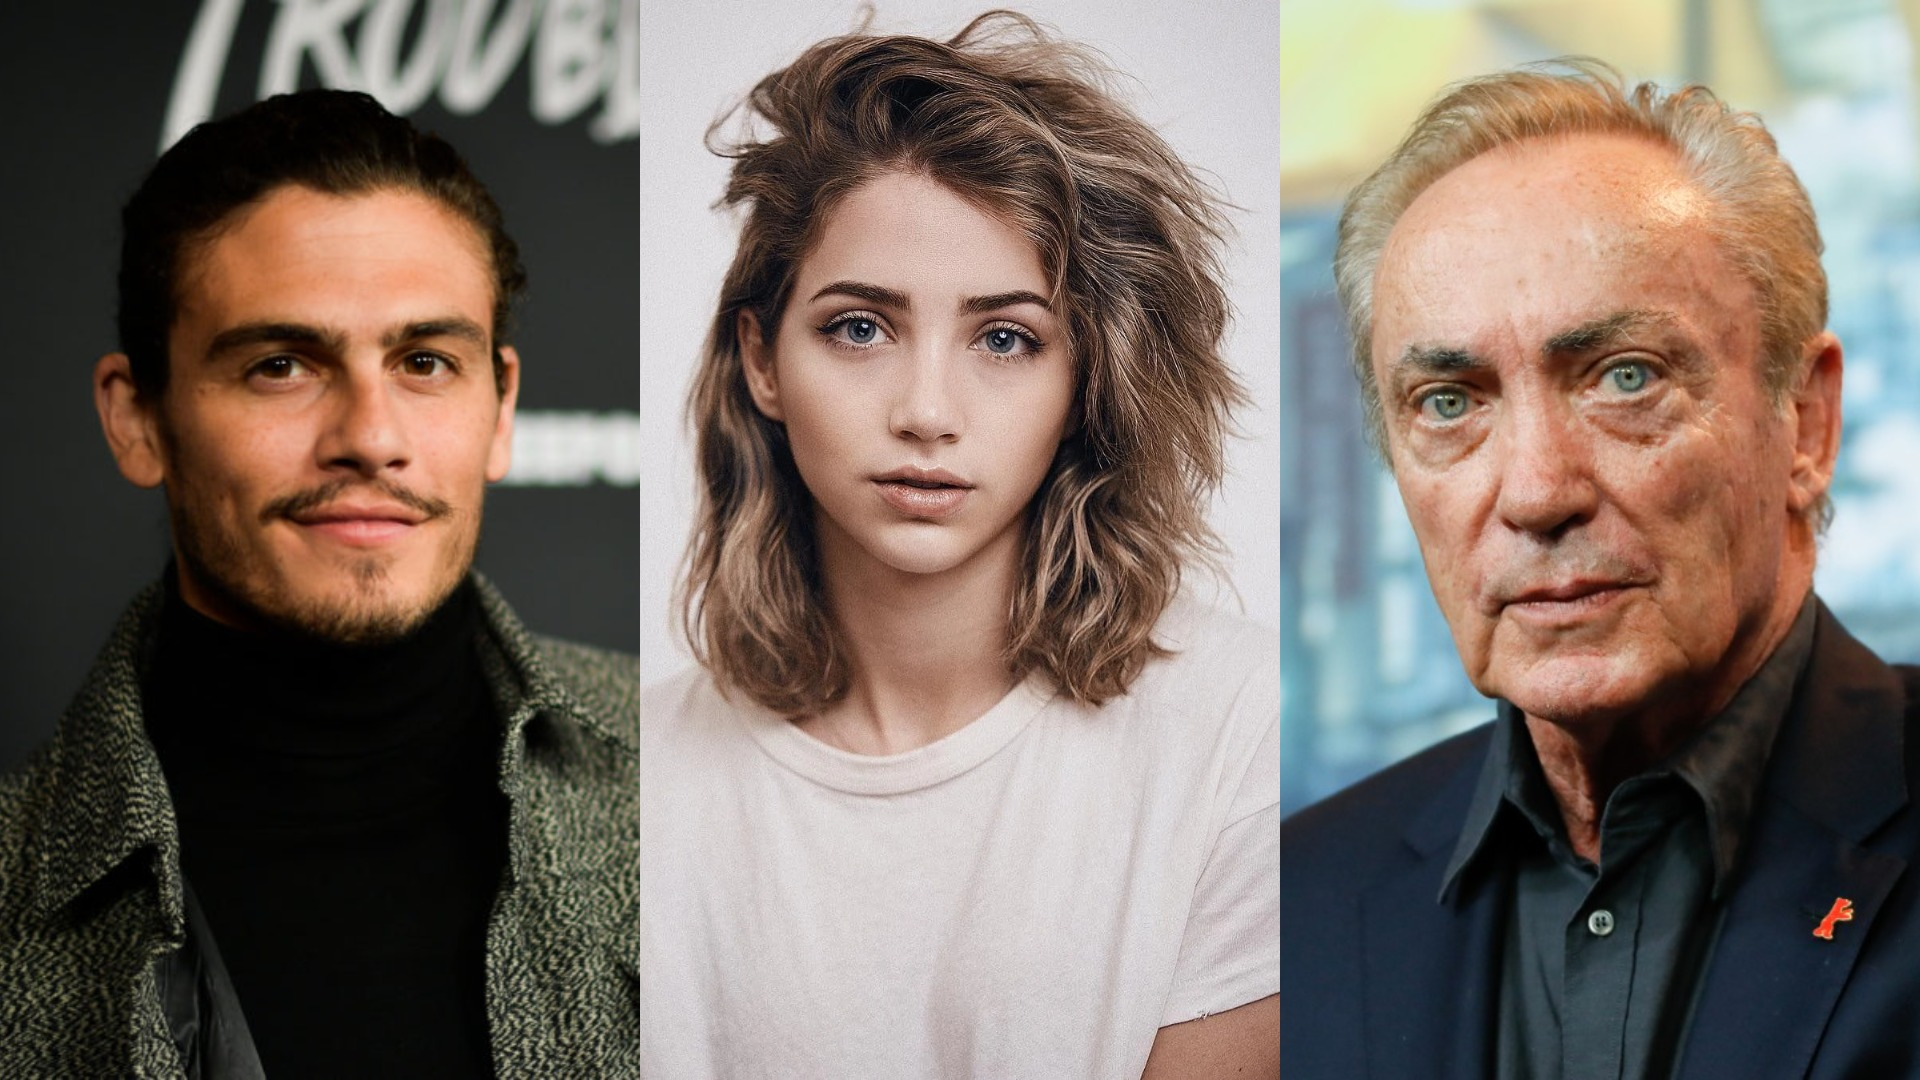 Deadline is exclusively reporting that Tommy Martinez, Emily Rudd and Udo Kier are the latest names to join the cast for the upcoming second season of Amazon drama series Hunters.